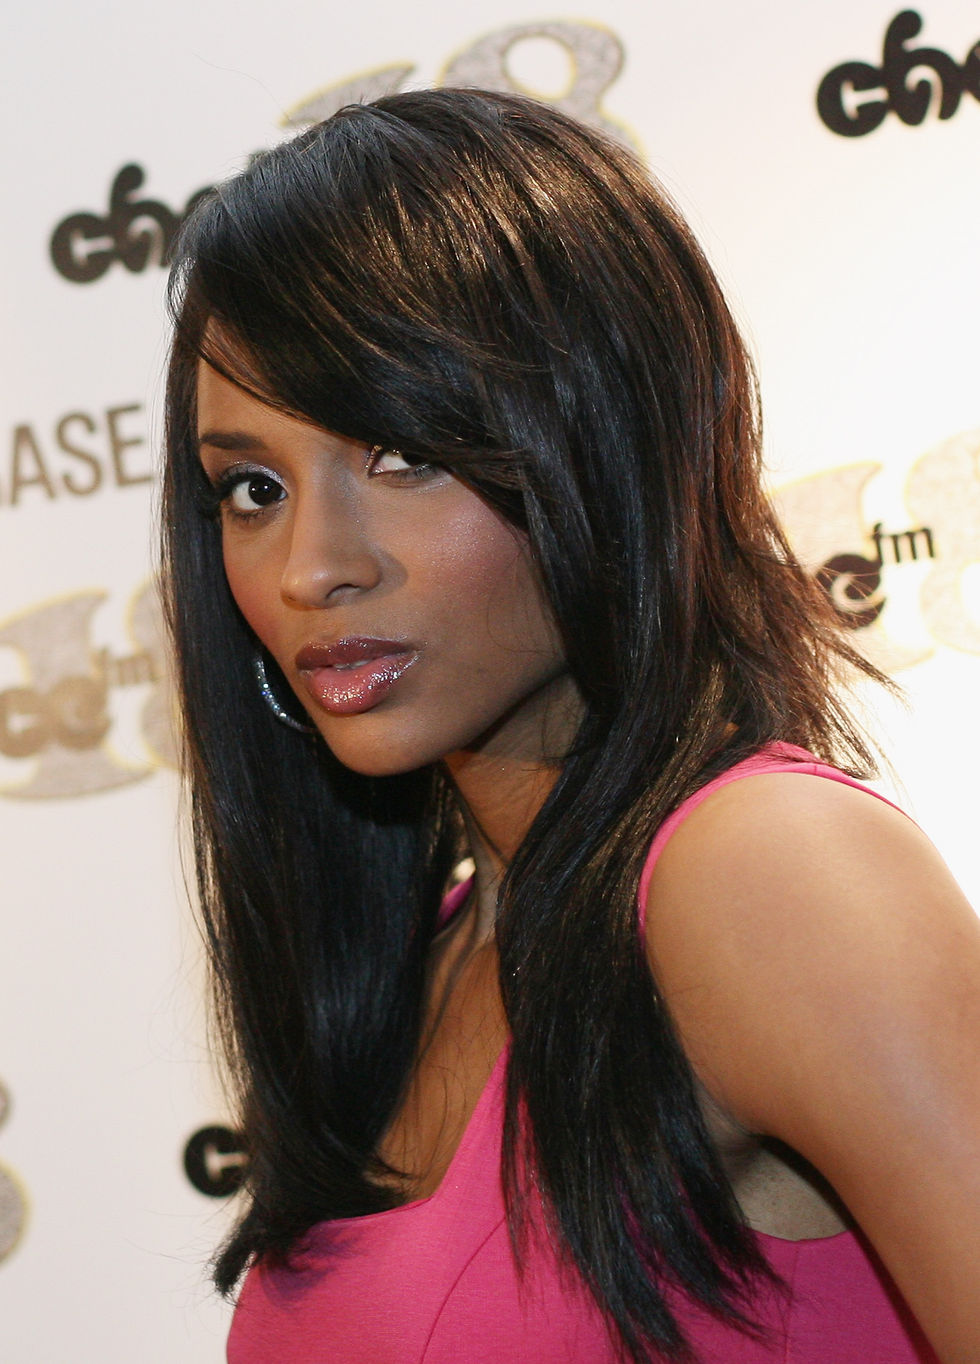 ciara-choice-fm-18th-aniversary-party-in-london-01